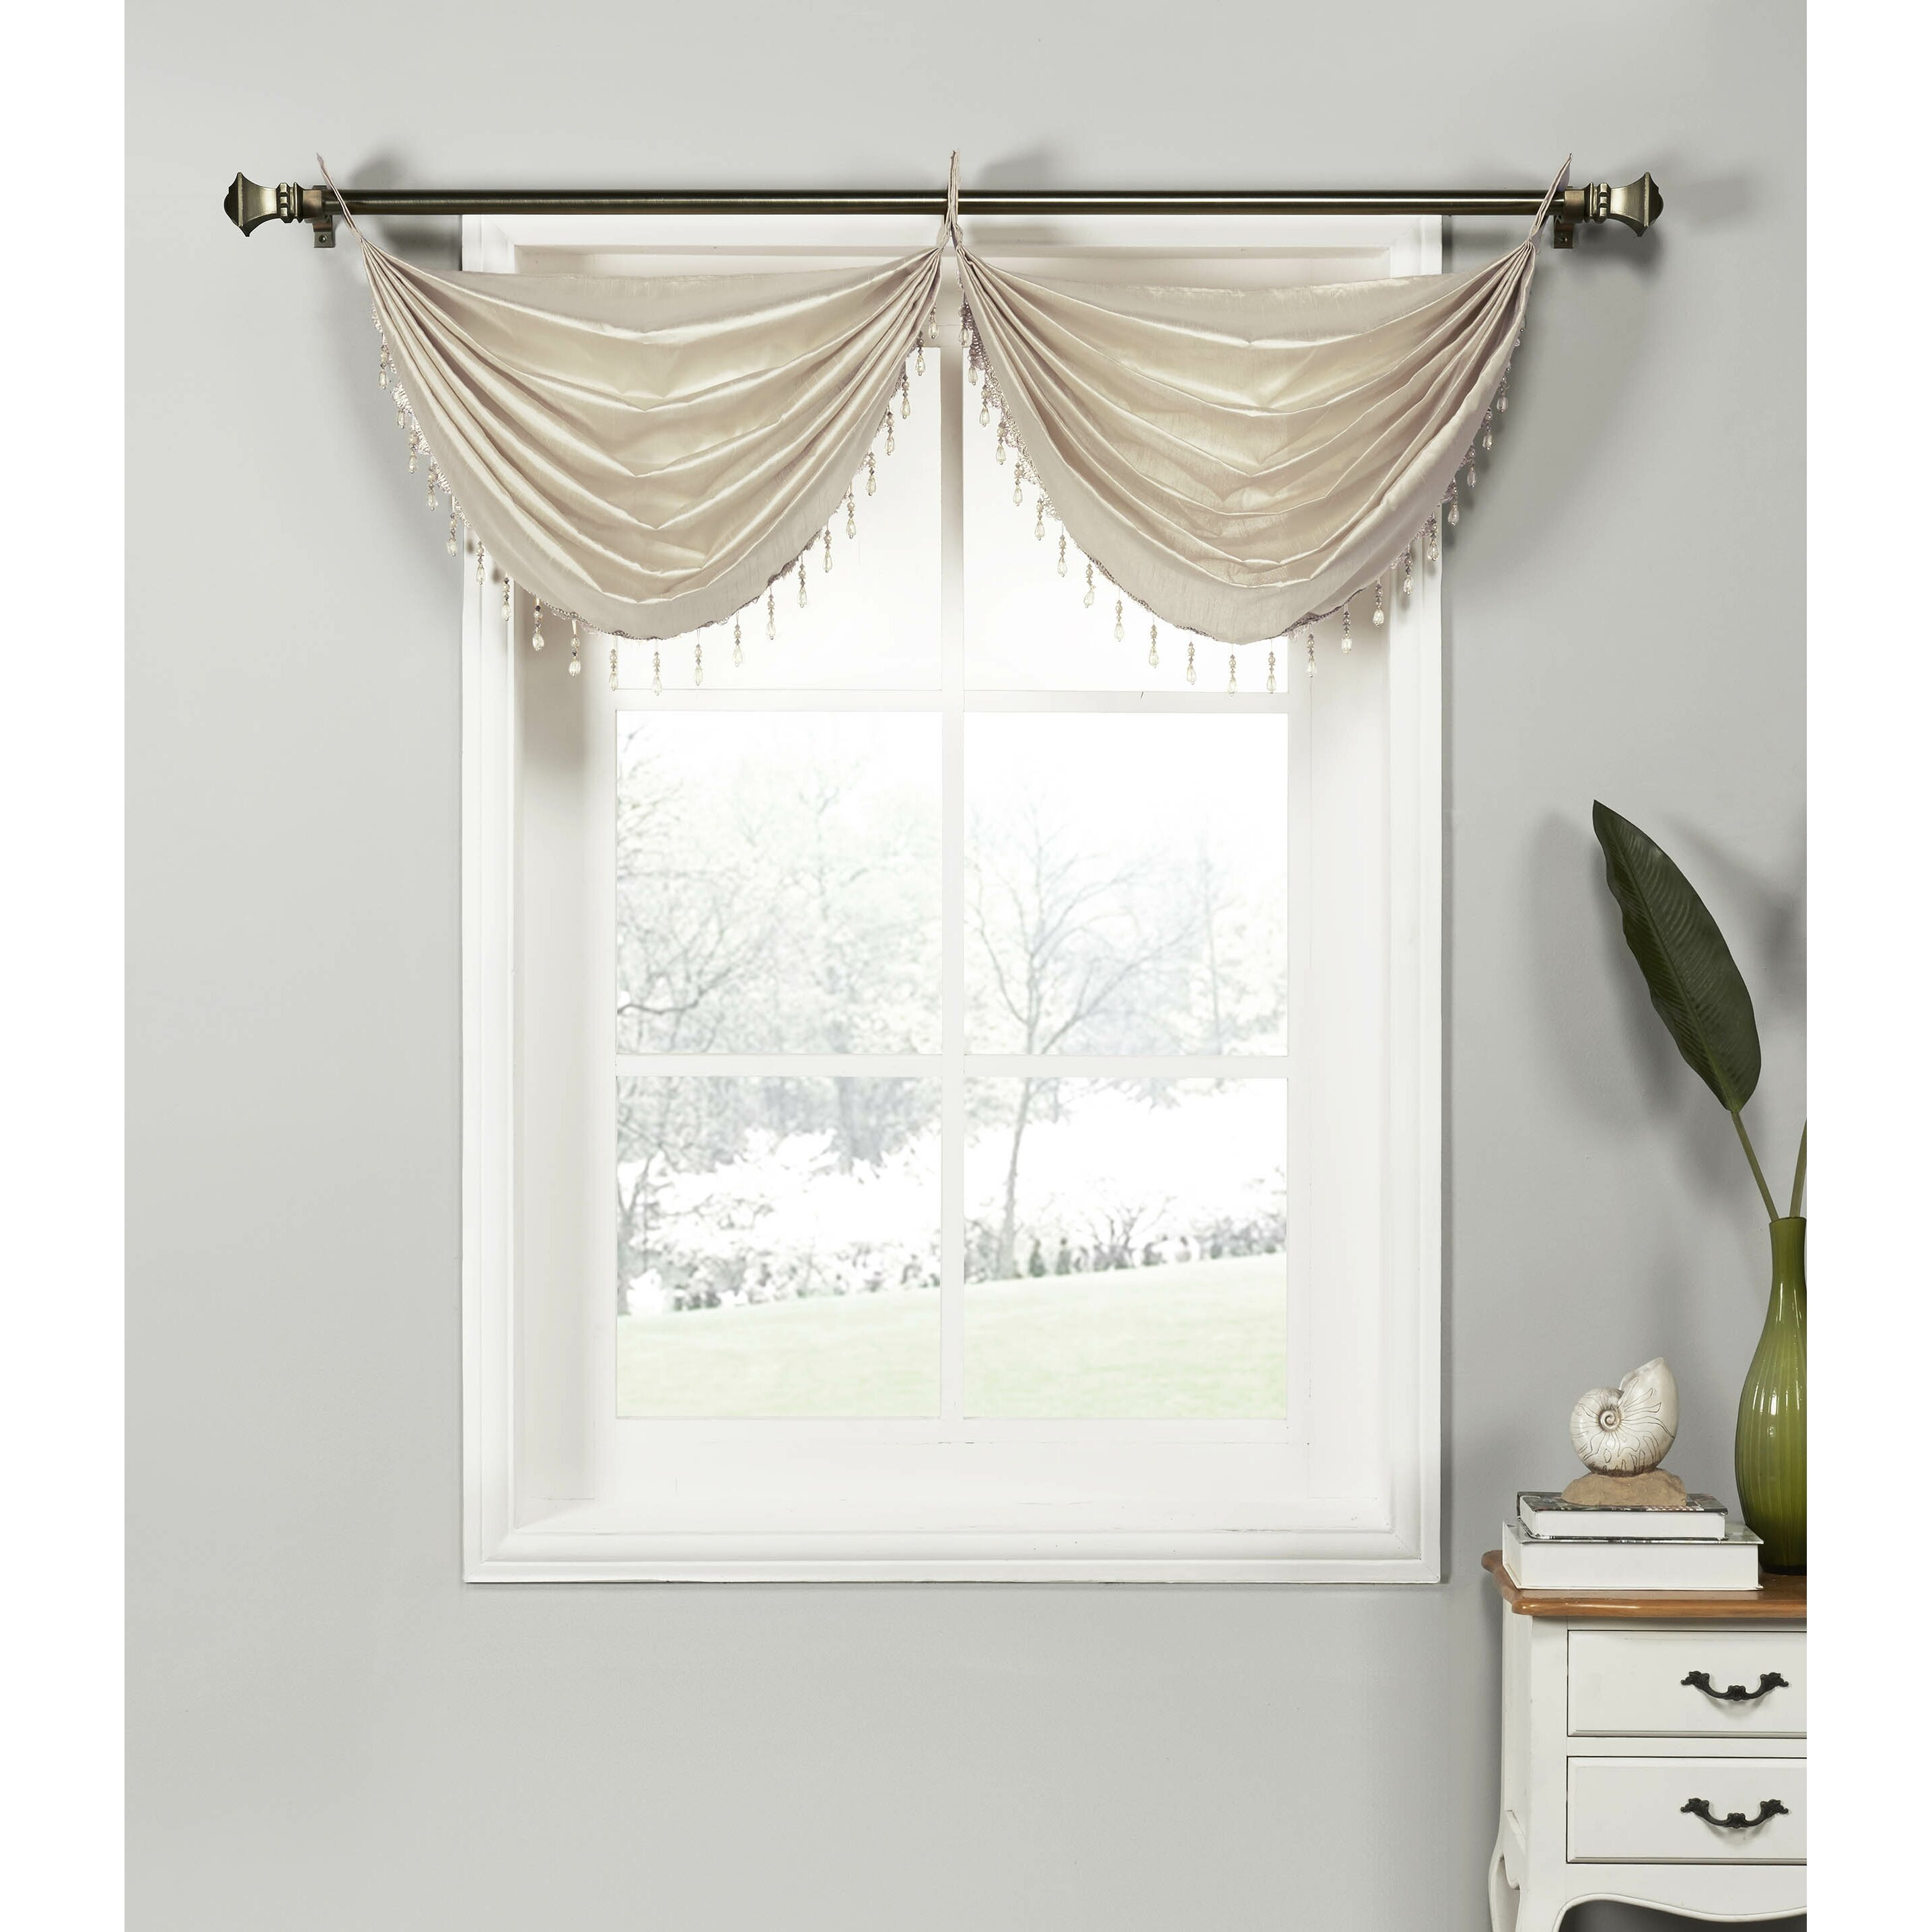 Astoria Grand Shaftoe Silk Waterfall Window Curtain Valance Reviews Wayfair